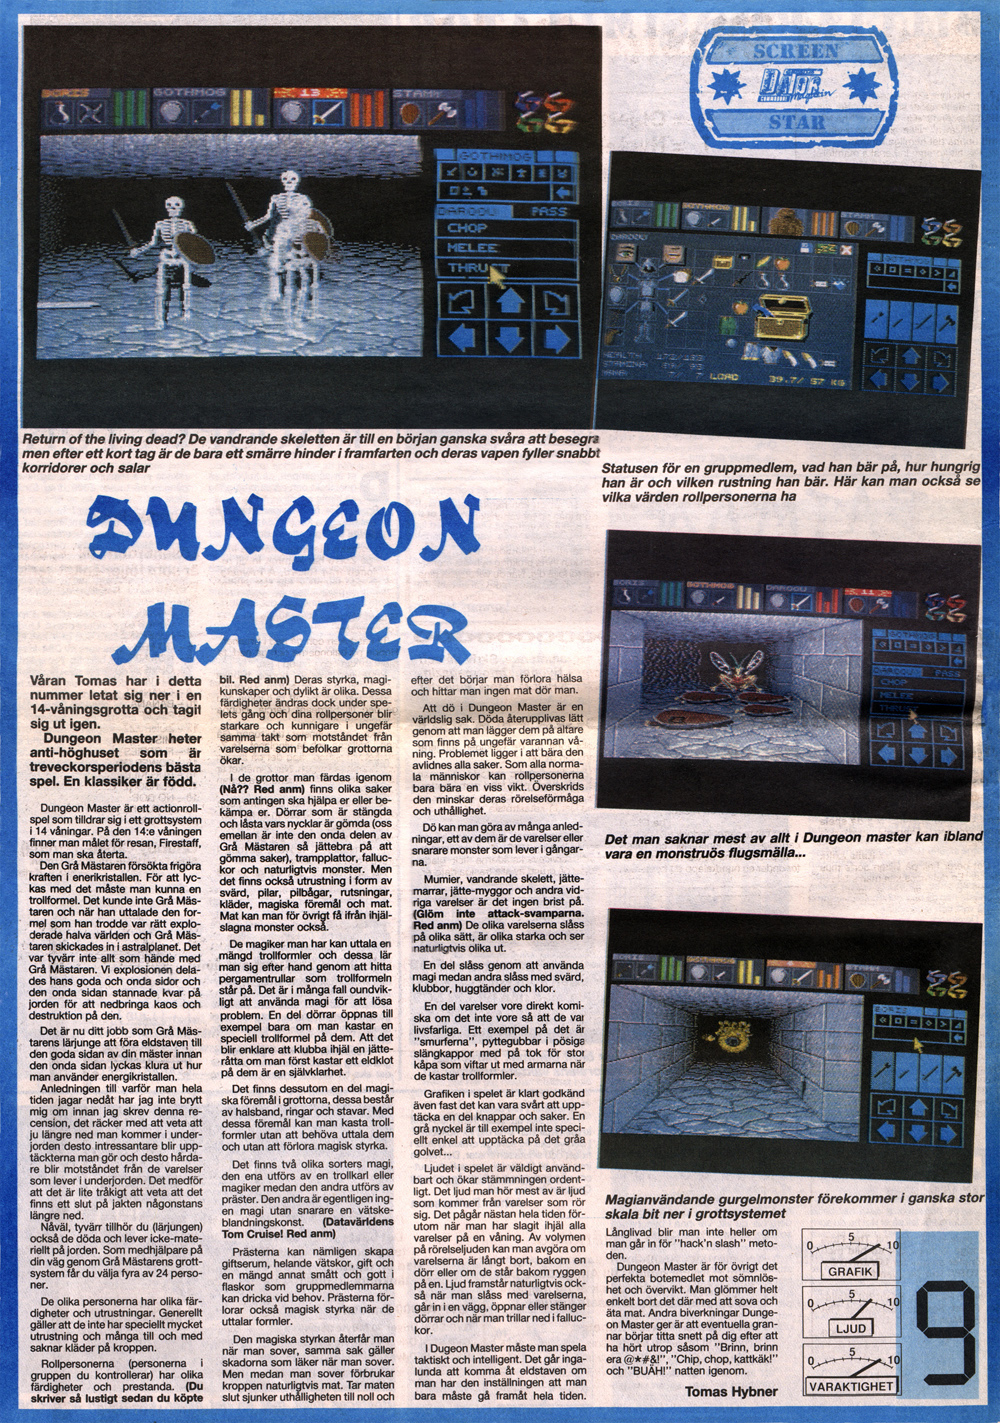 Dungeon Master for Amiga Review published in Swedish magazine 'Datormagazin', Issue #5, April 1989, Page 18